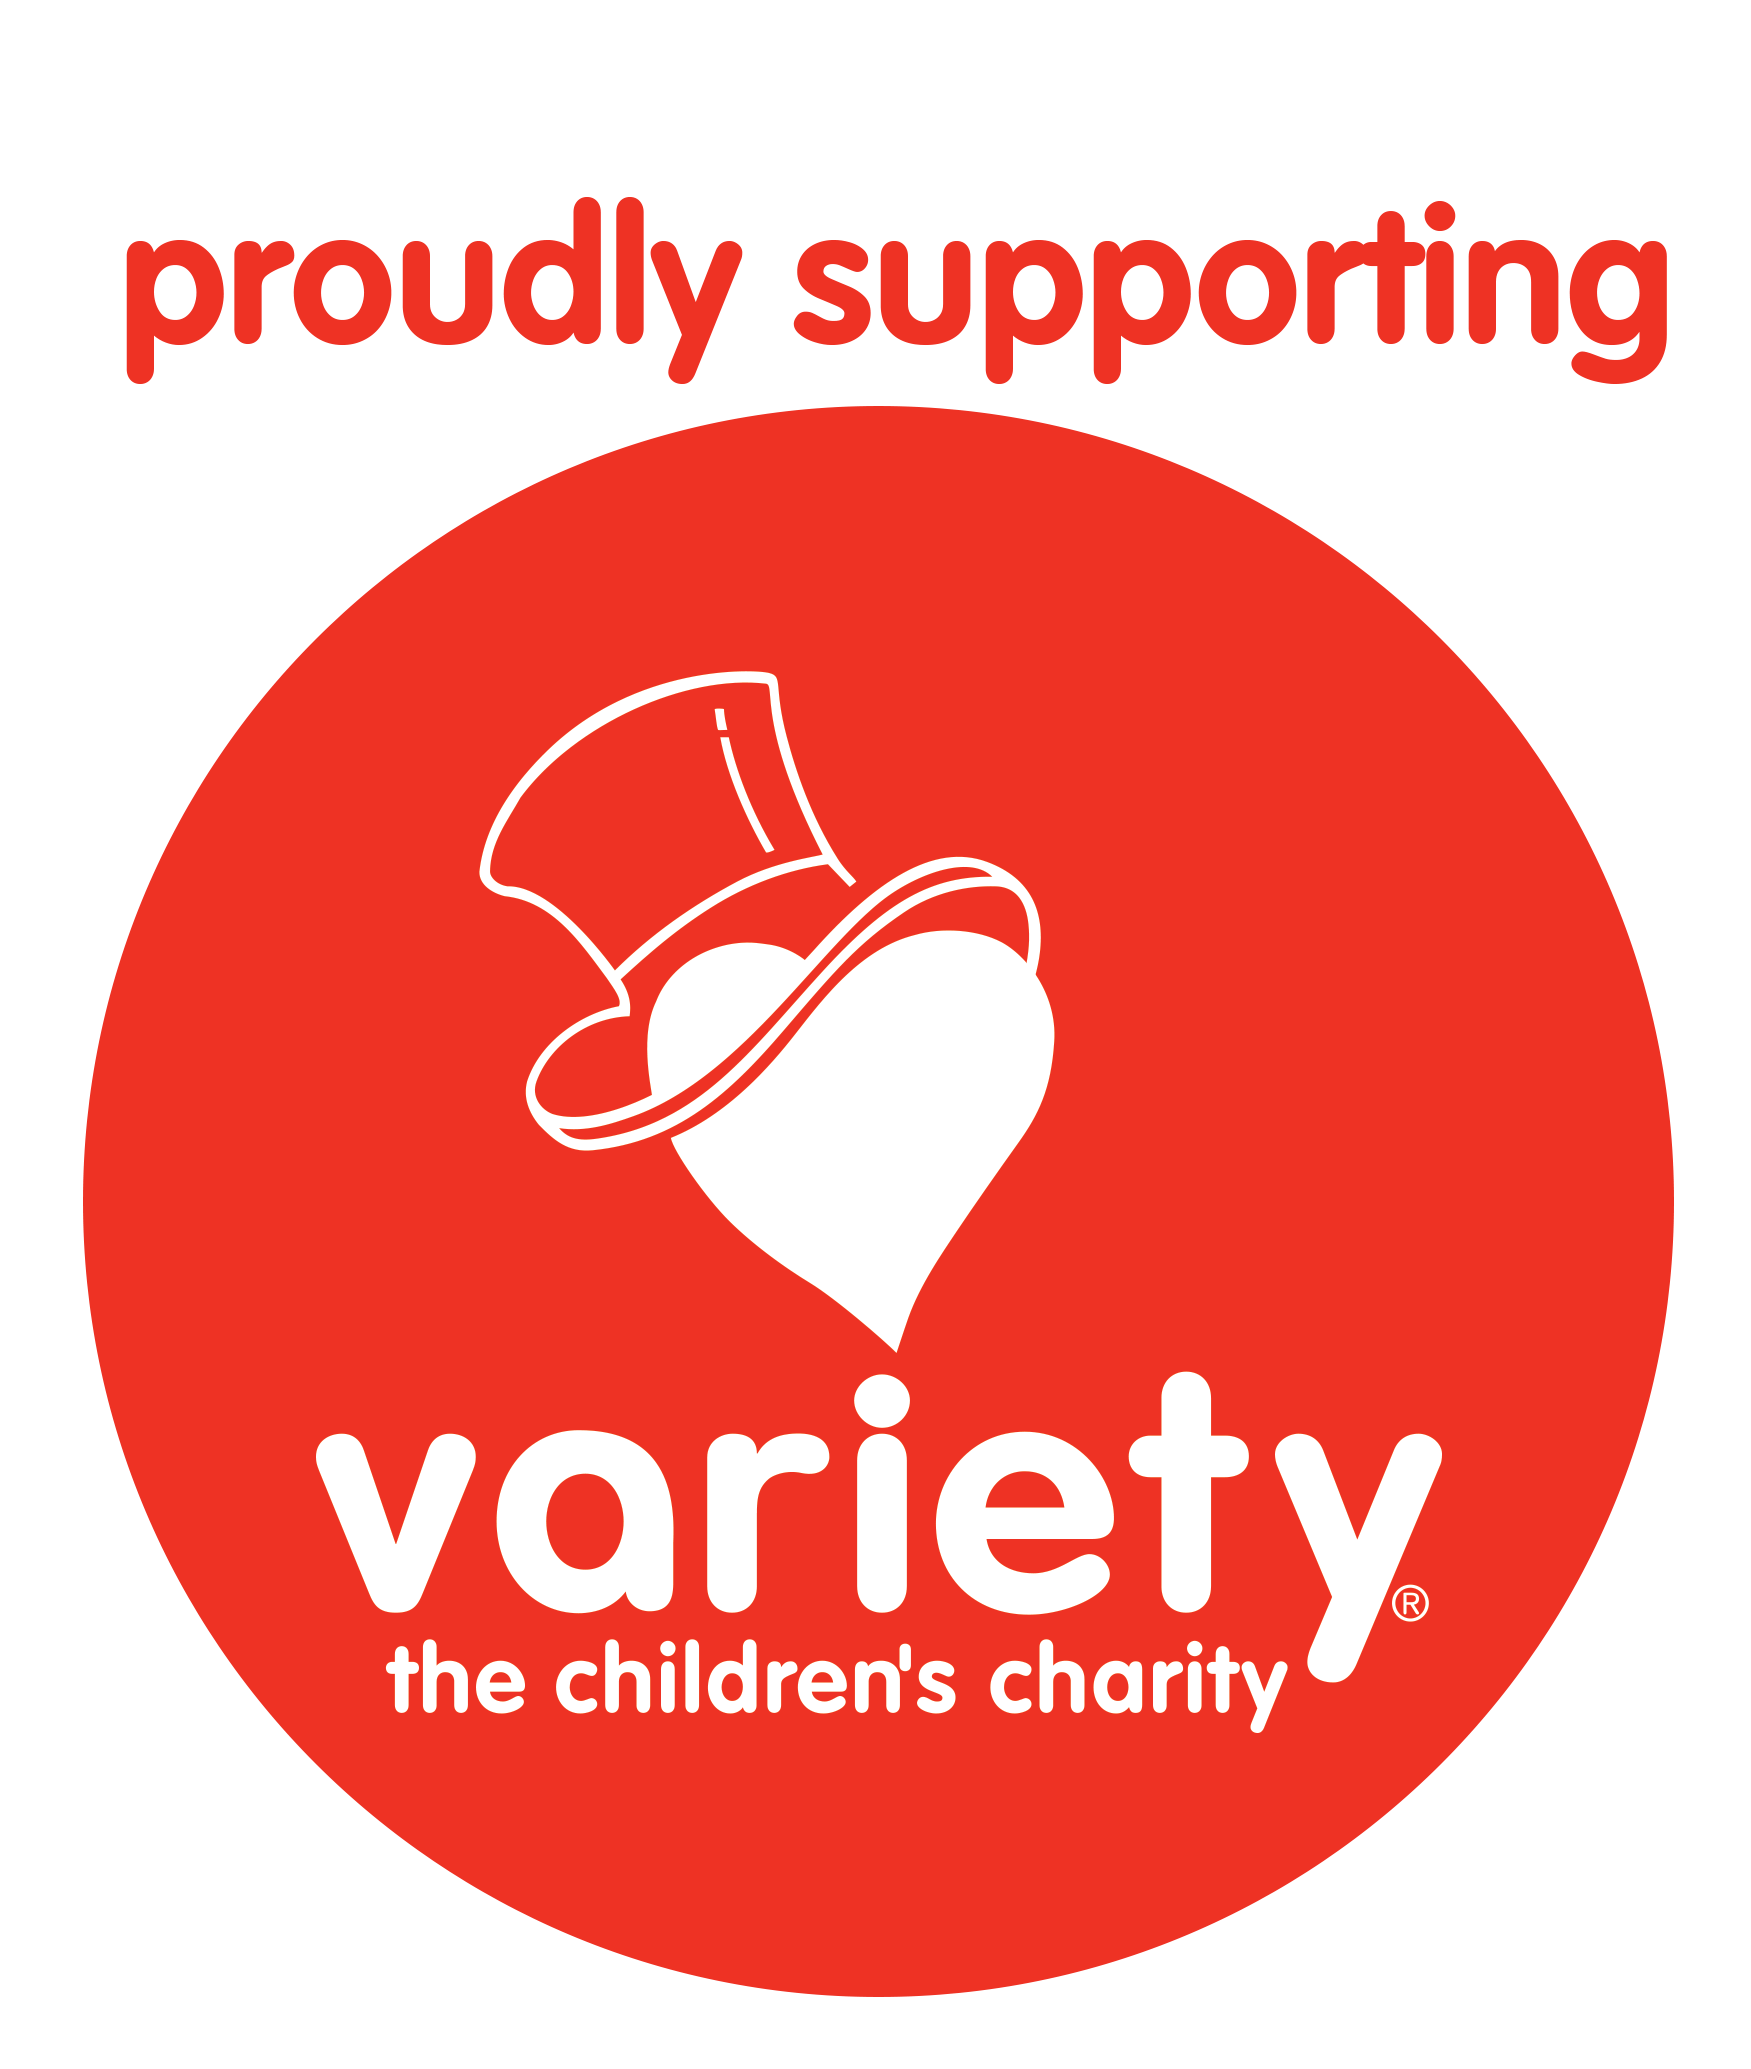 Proudly supporting Variety logo - red